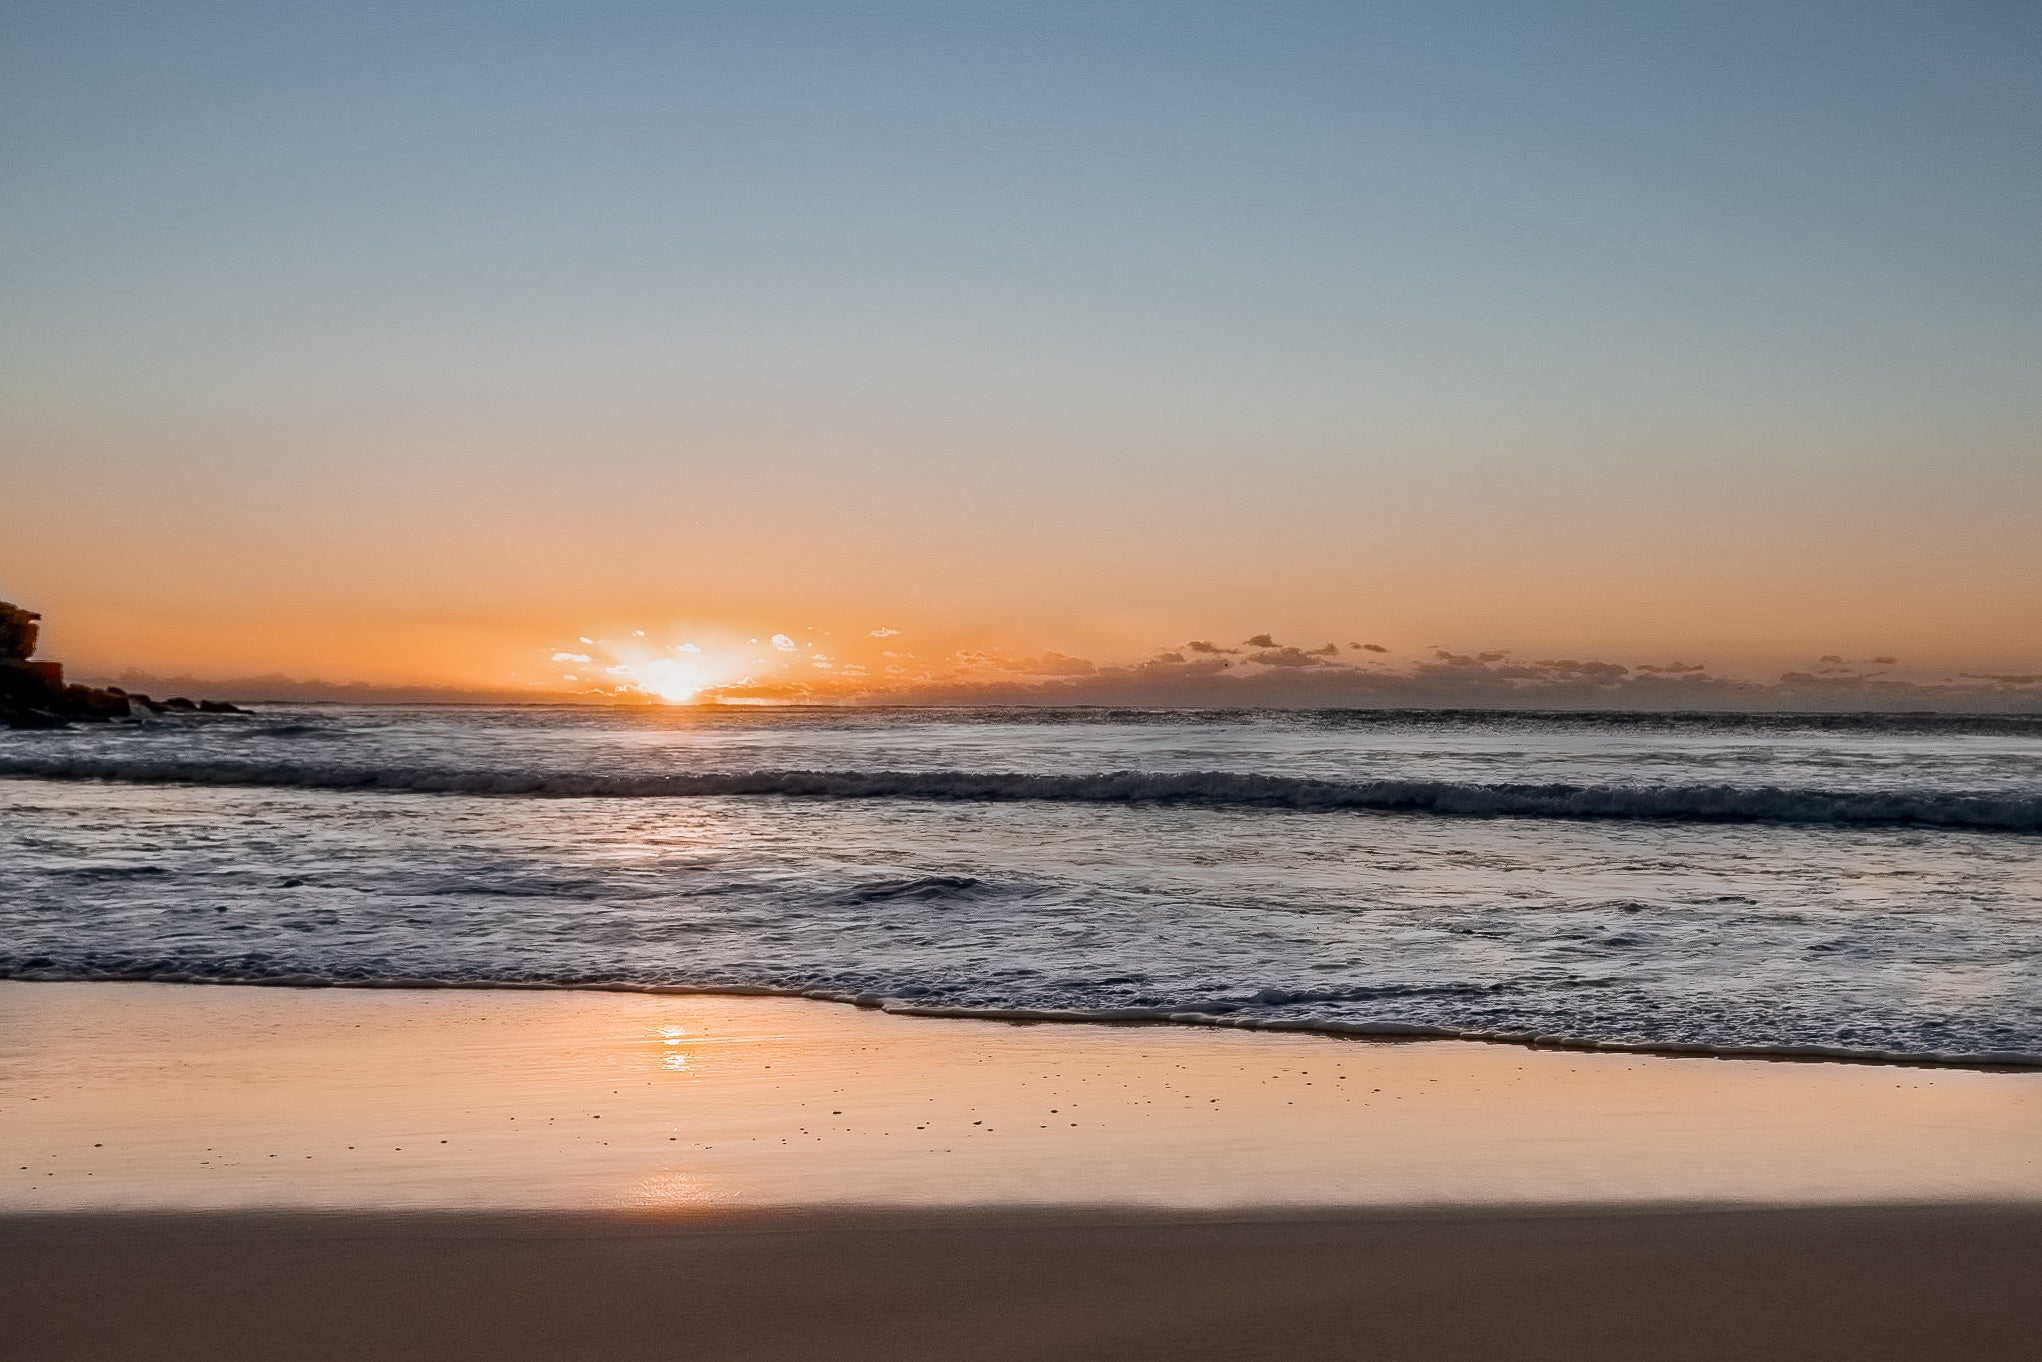 Sunrise photo from the 31st March 2019 at Manly beach in Sydney